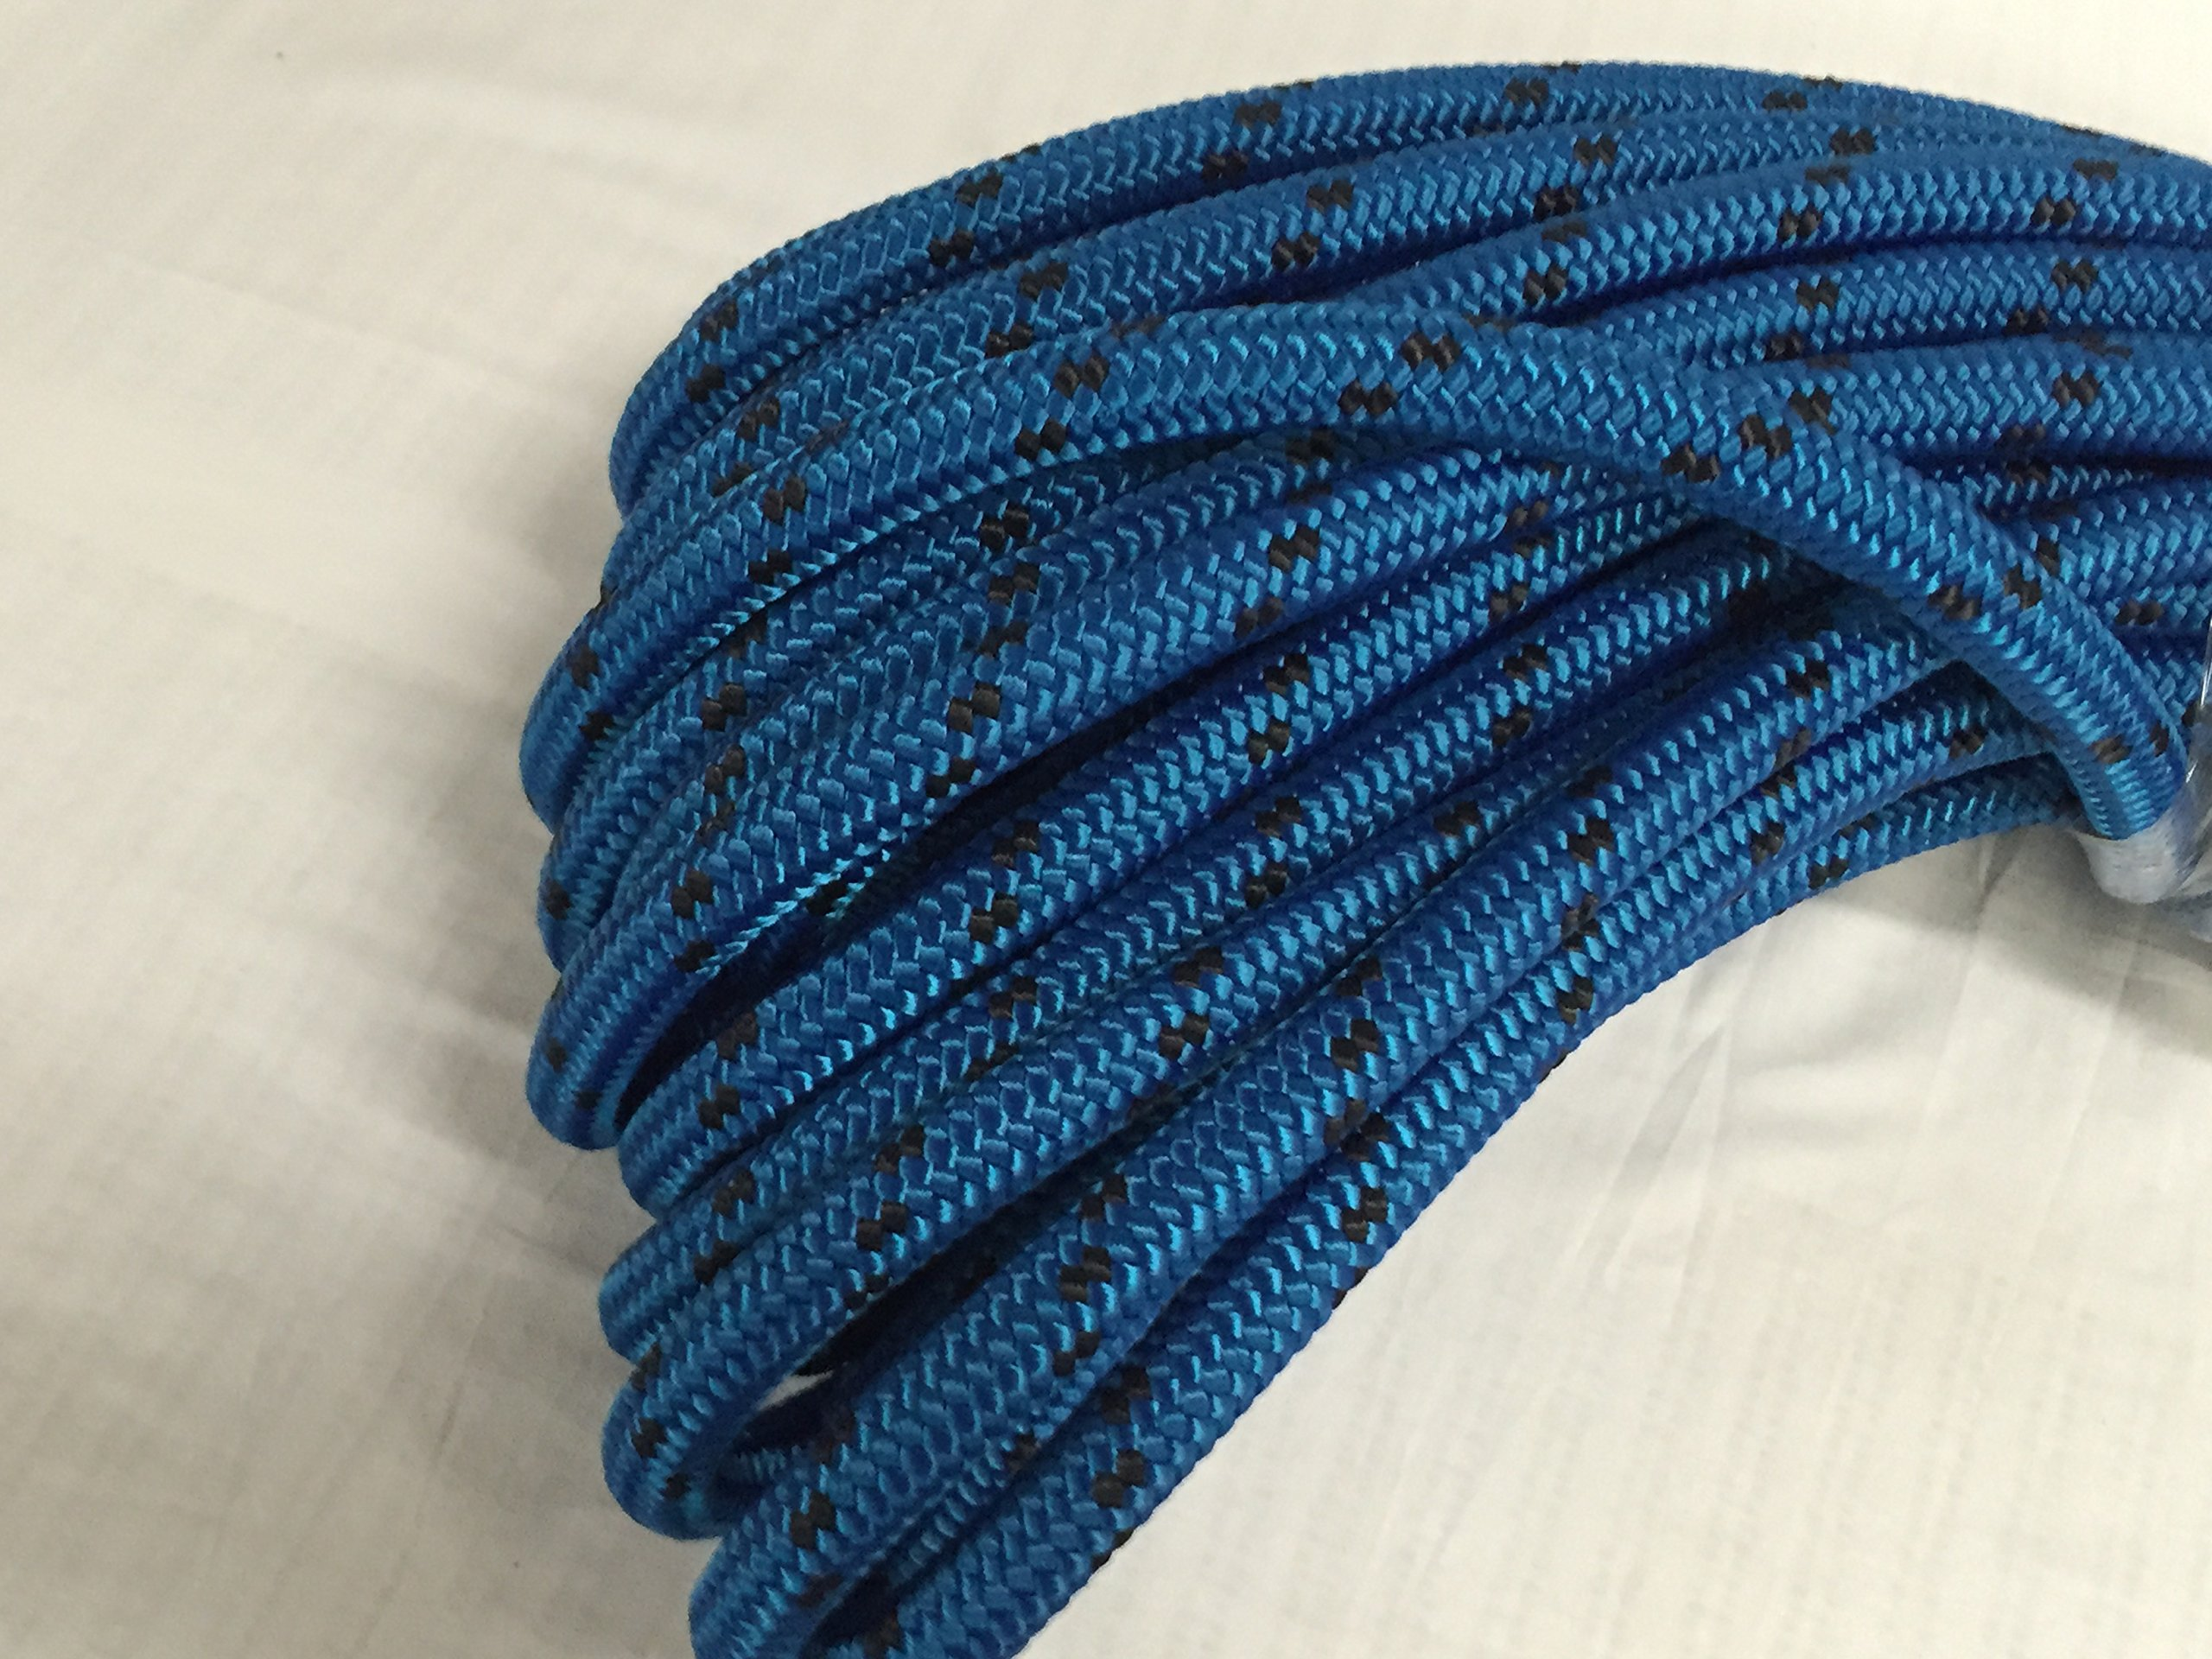 5/8'' X 120' Double Braid Polyester Arborist Bull Rope, Blue/Black by Blue Ox Rope (Image #1)